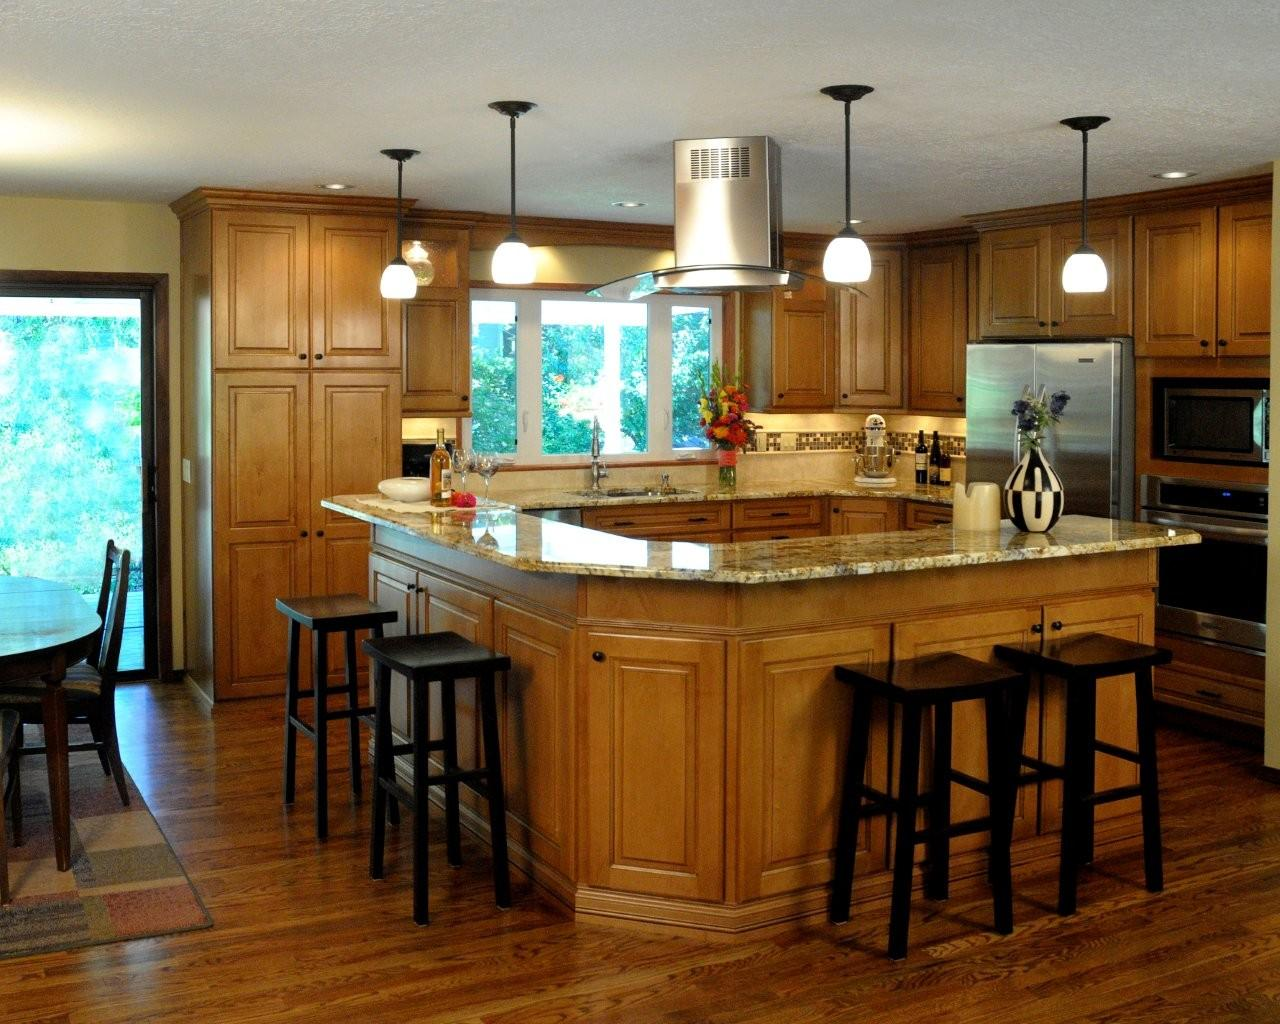 Innovative cabinet designs llc portland or 97203 for Innovative cabinet design